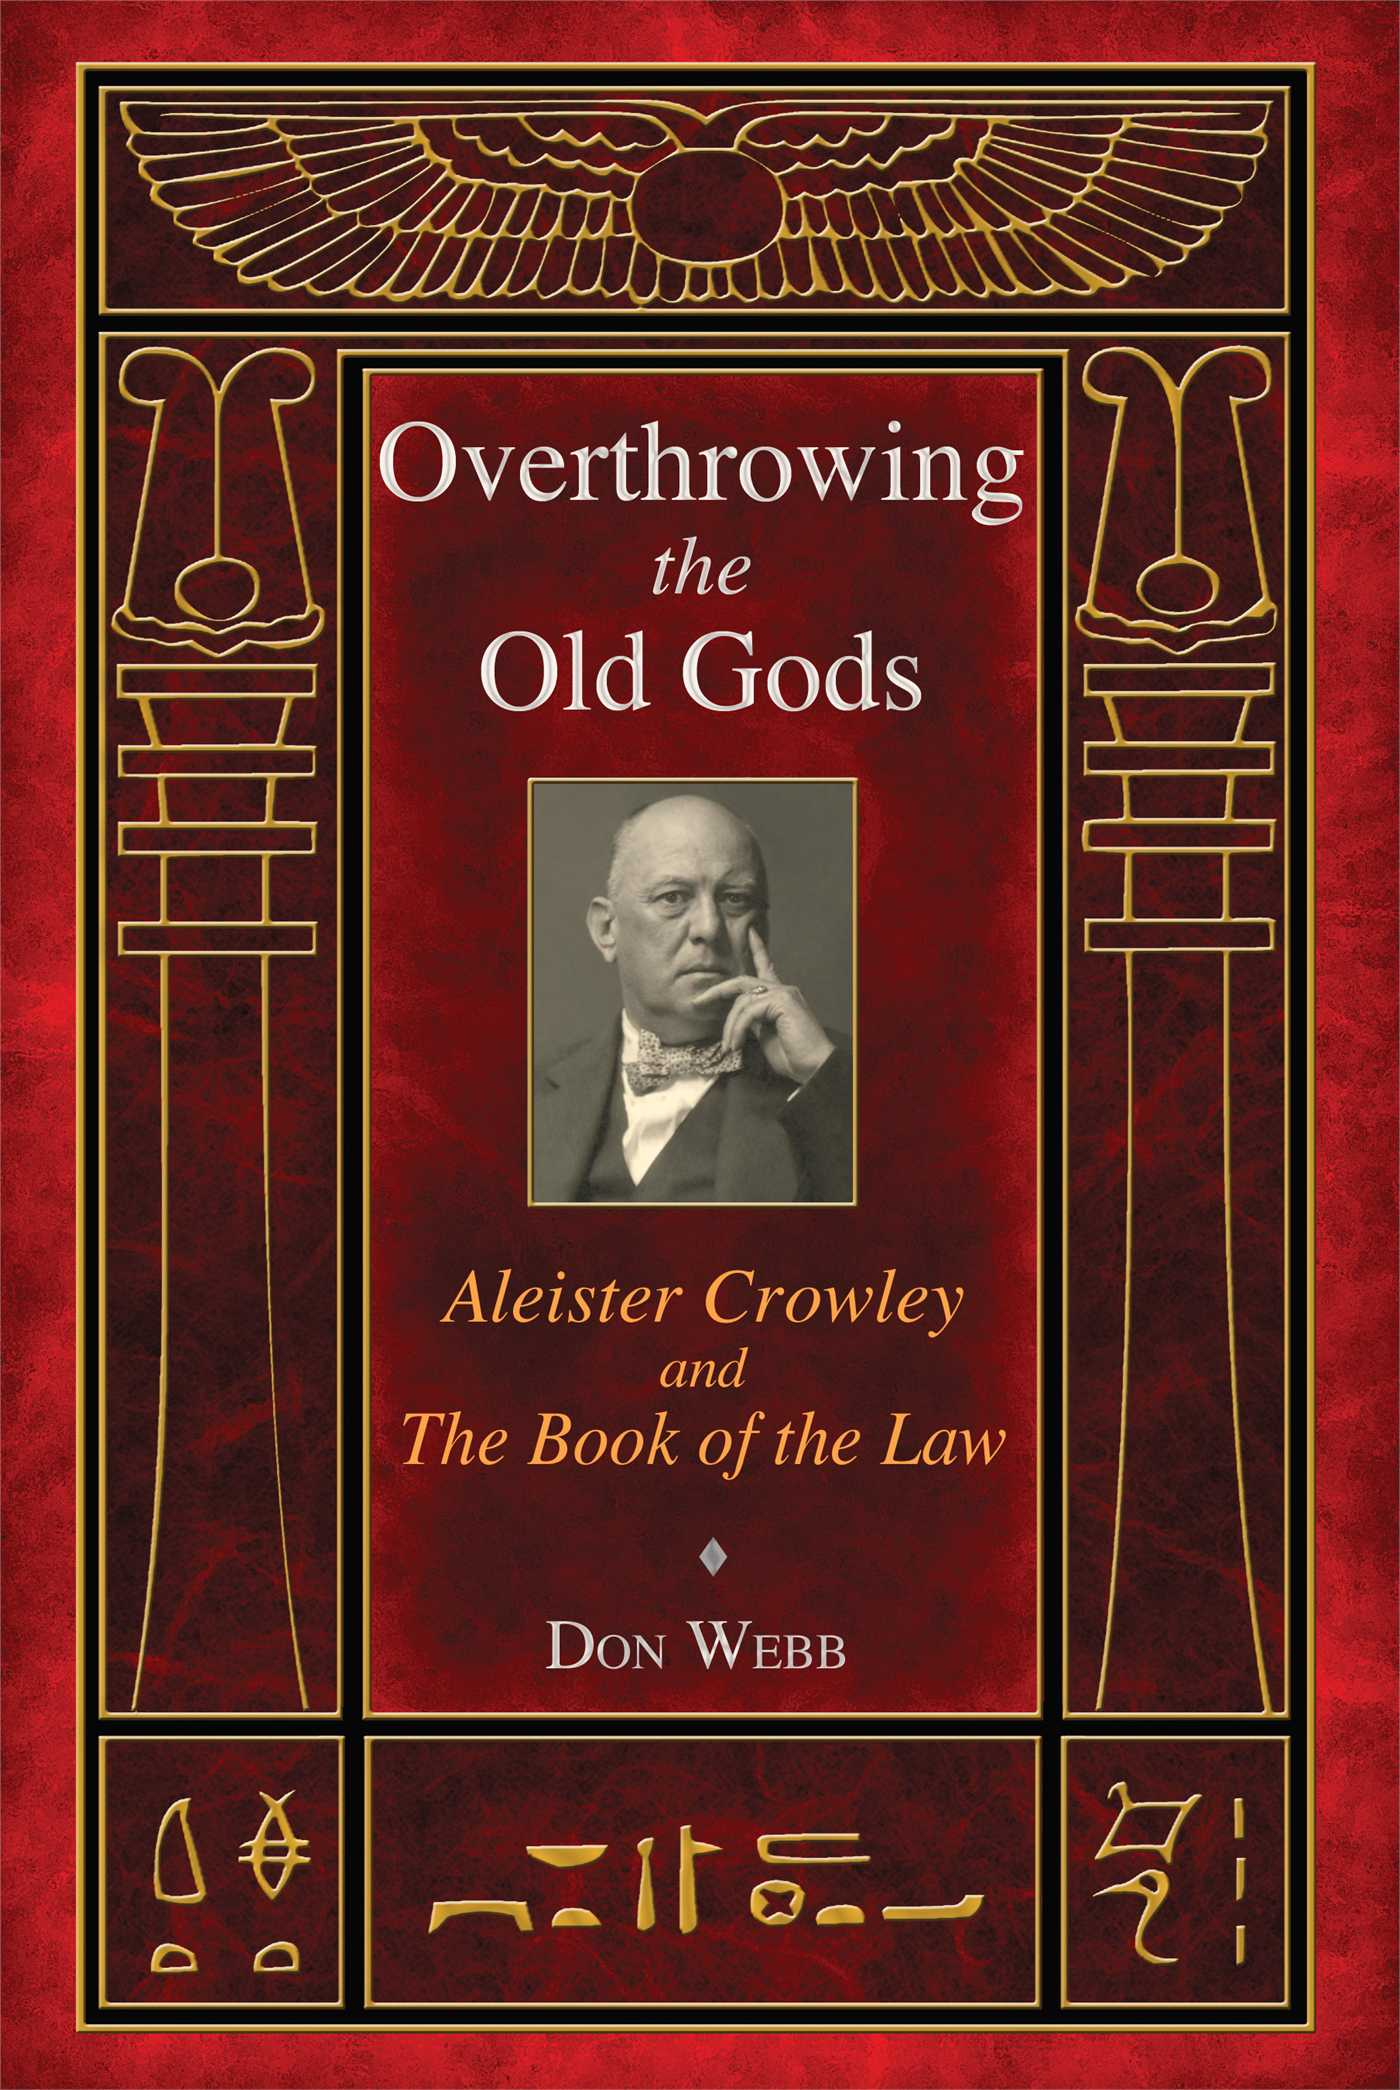 Overthrowing-the-old-gods-9781620551899_hr